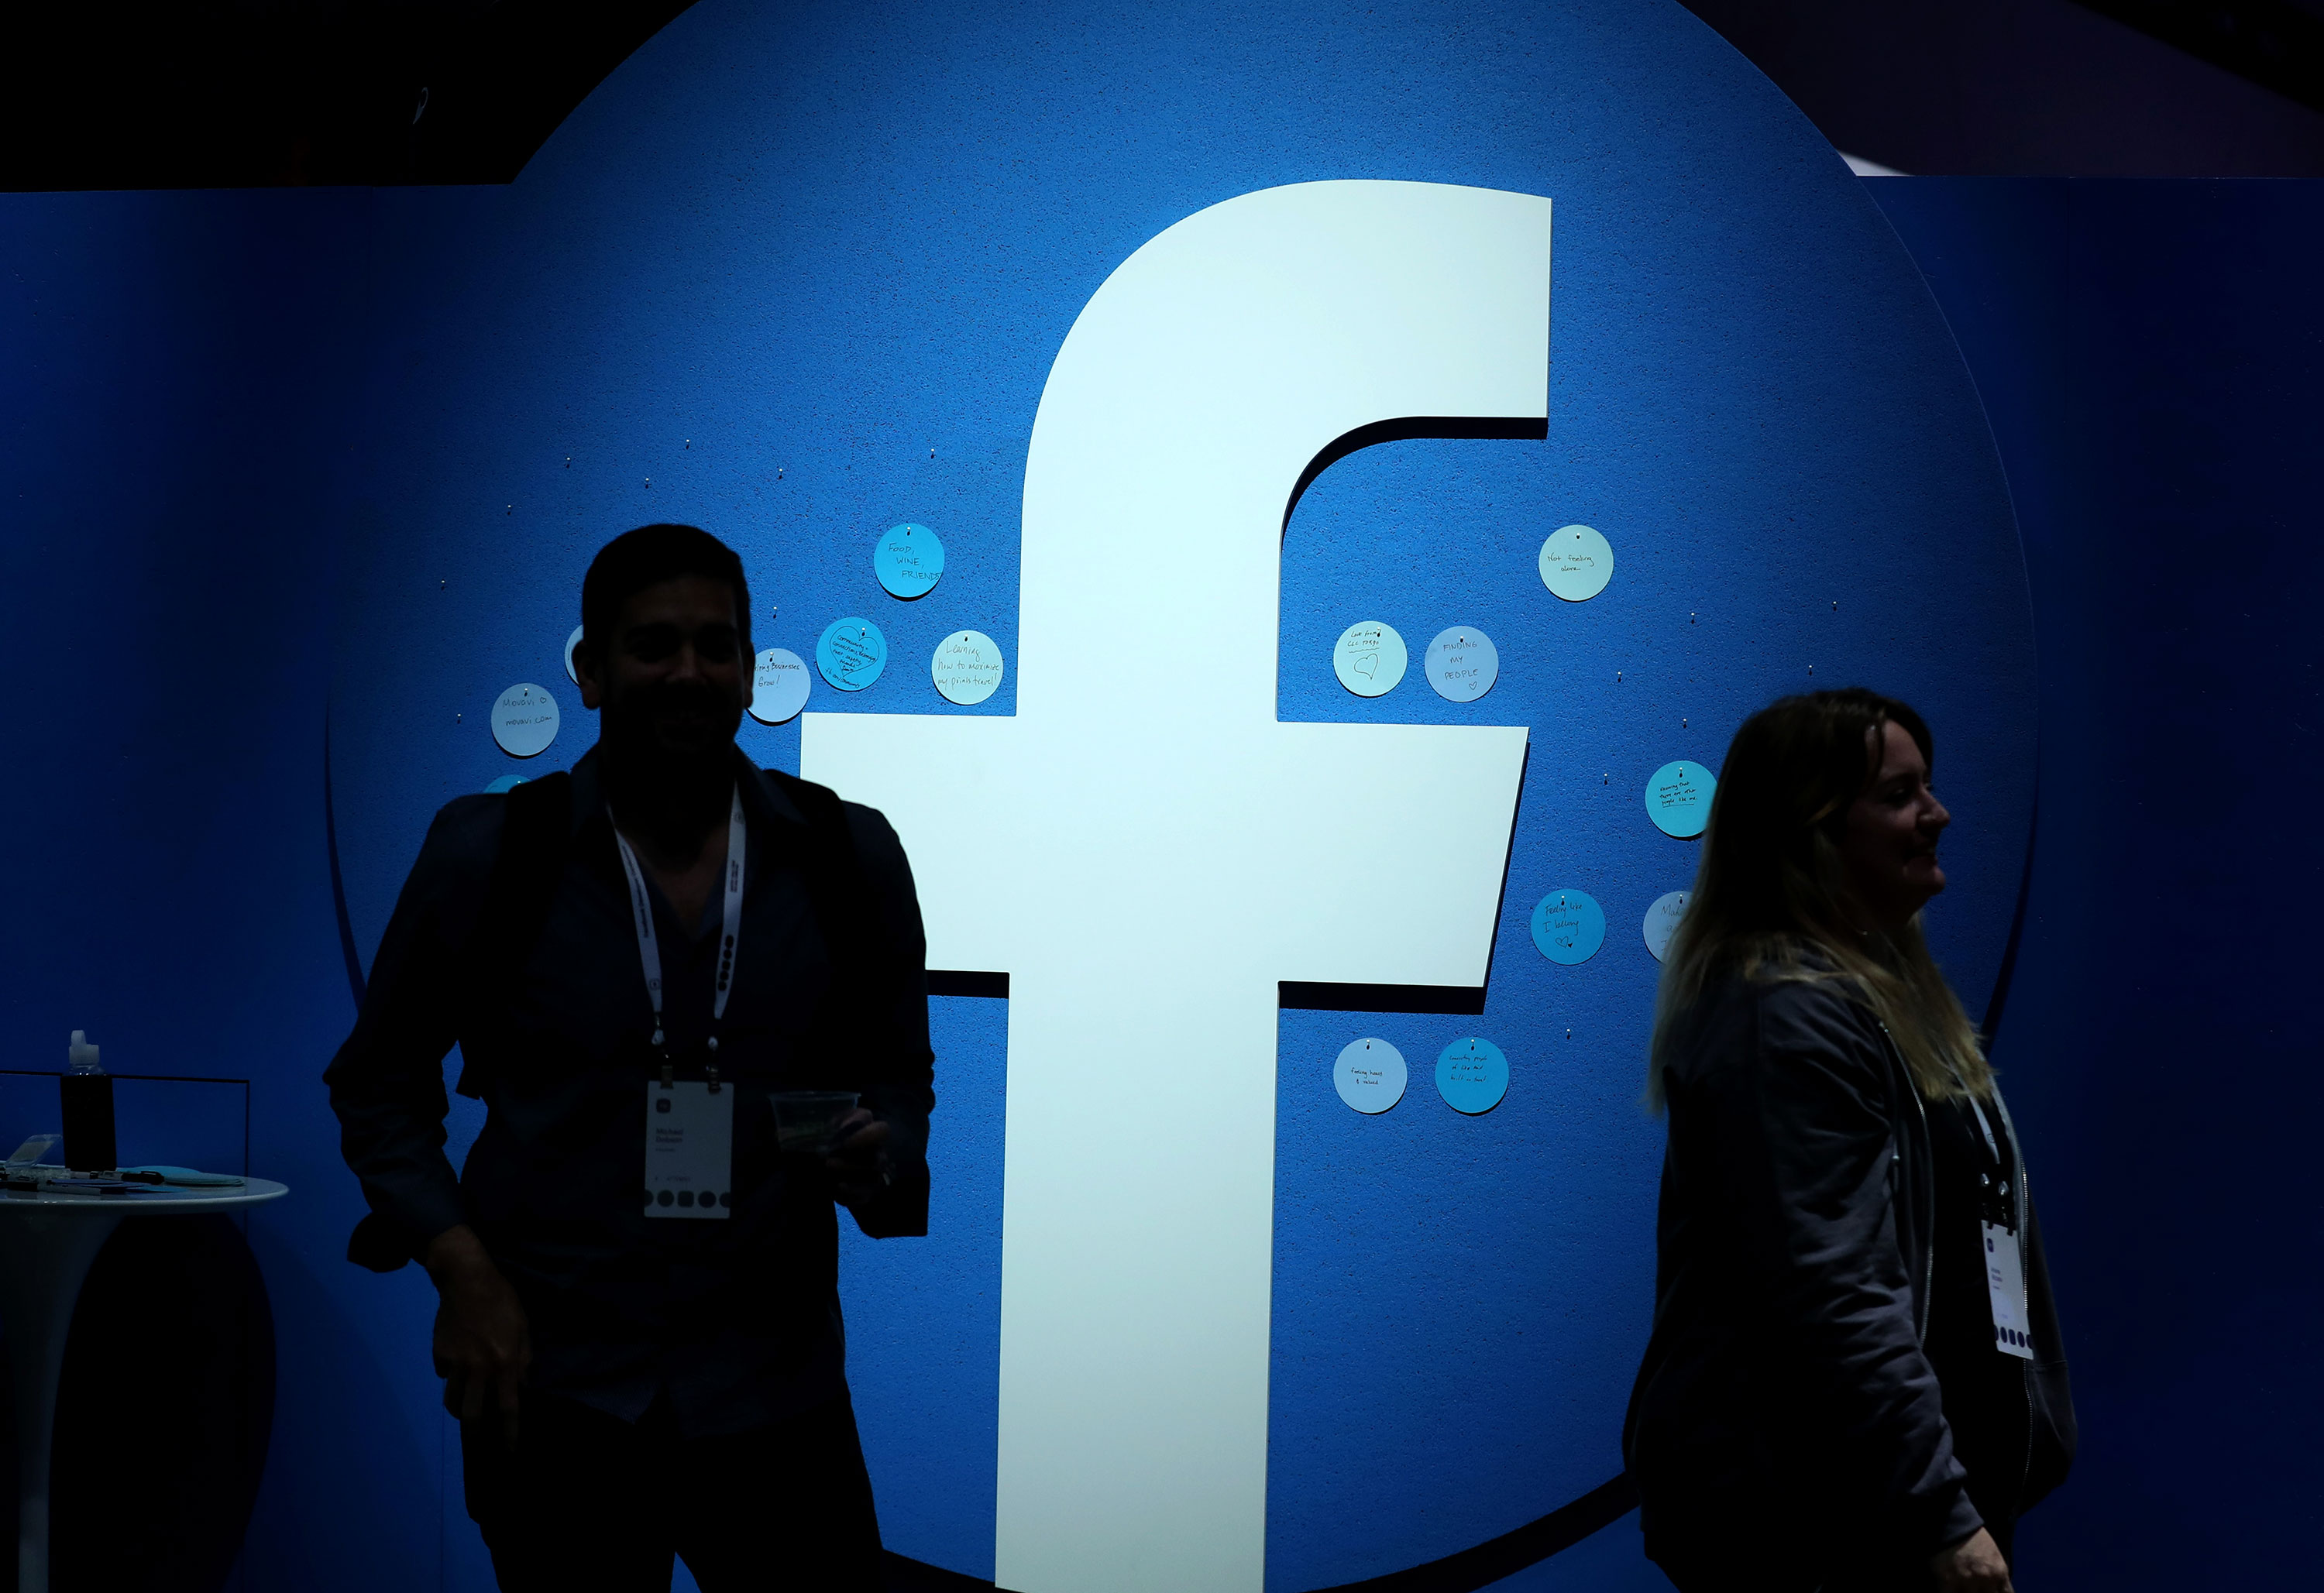 The Facebook logo is displayed at the F8 Facebook Developers conference in San Jose, California on April 30.